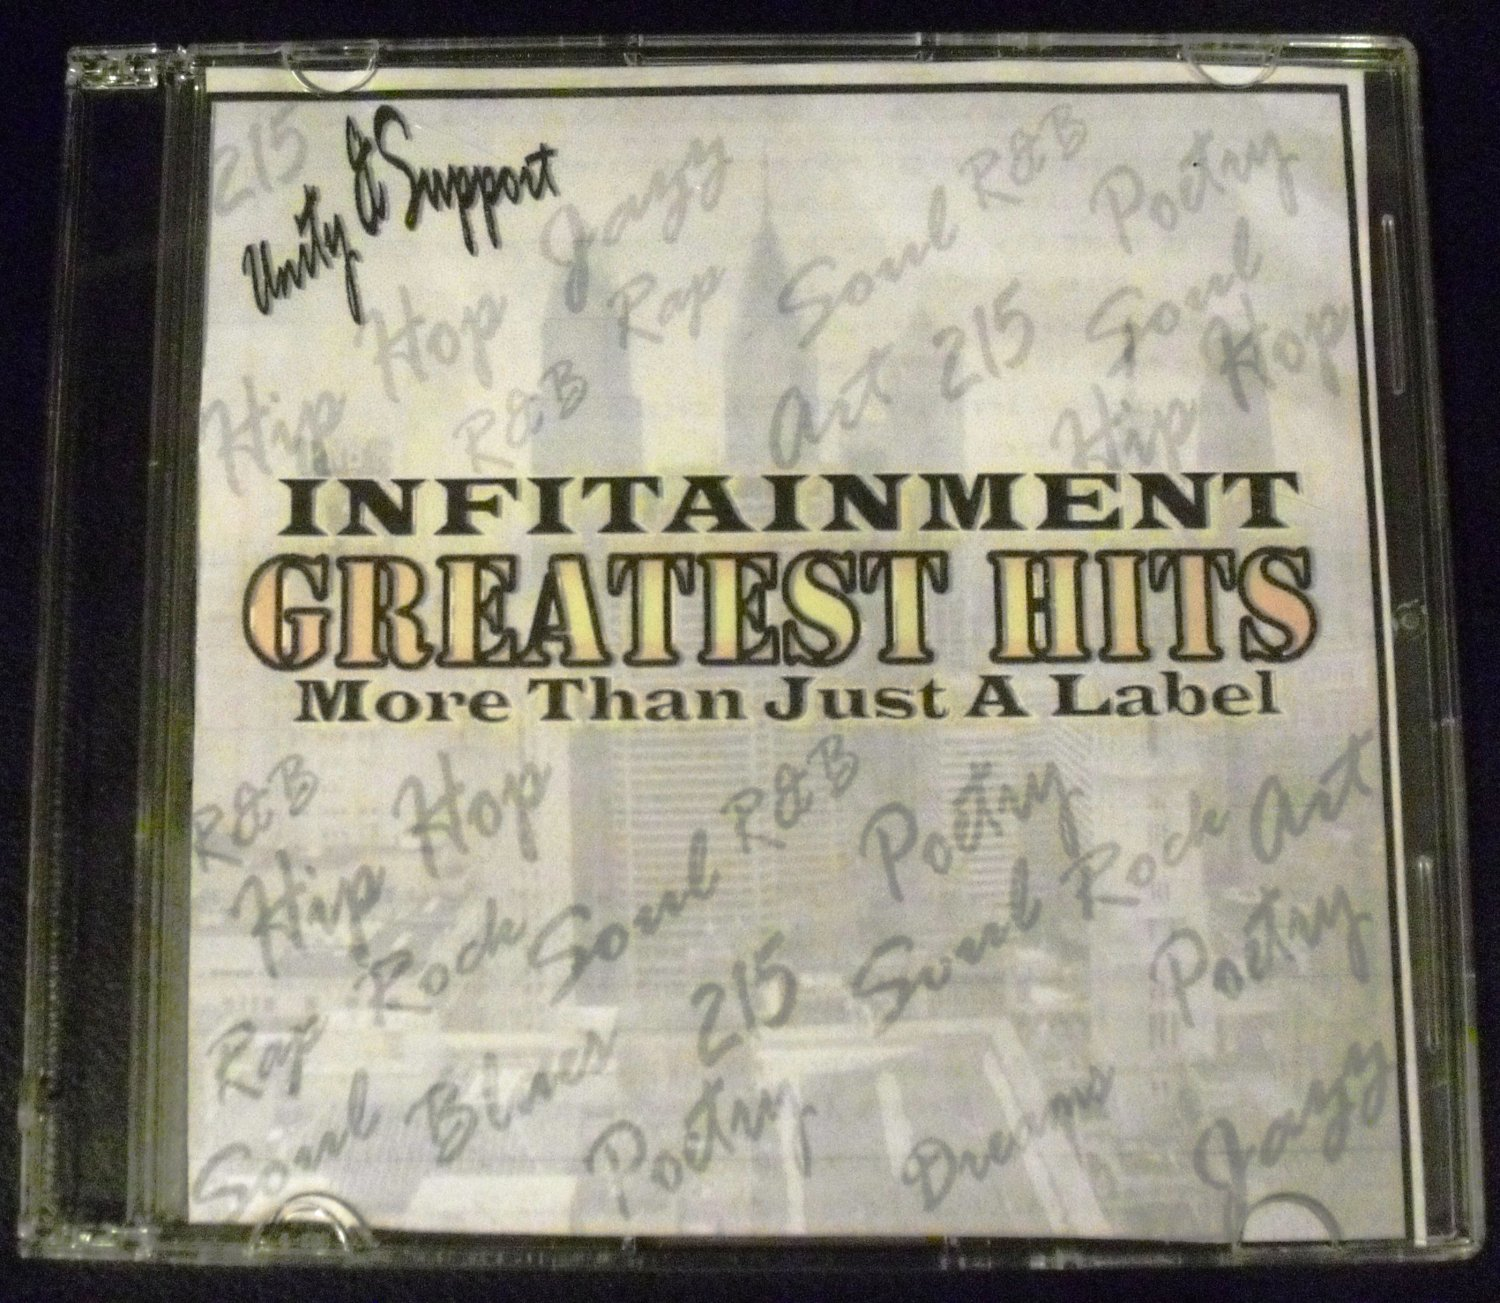 Infitainment Greatest Hits: More Than Just A Label (Audio CD)